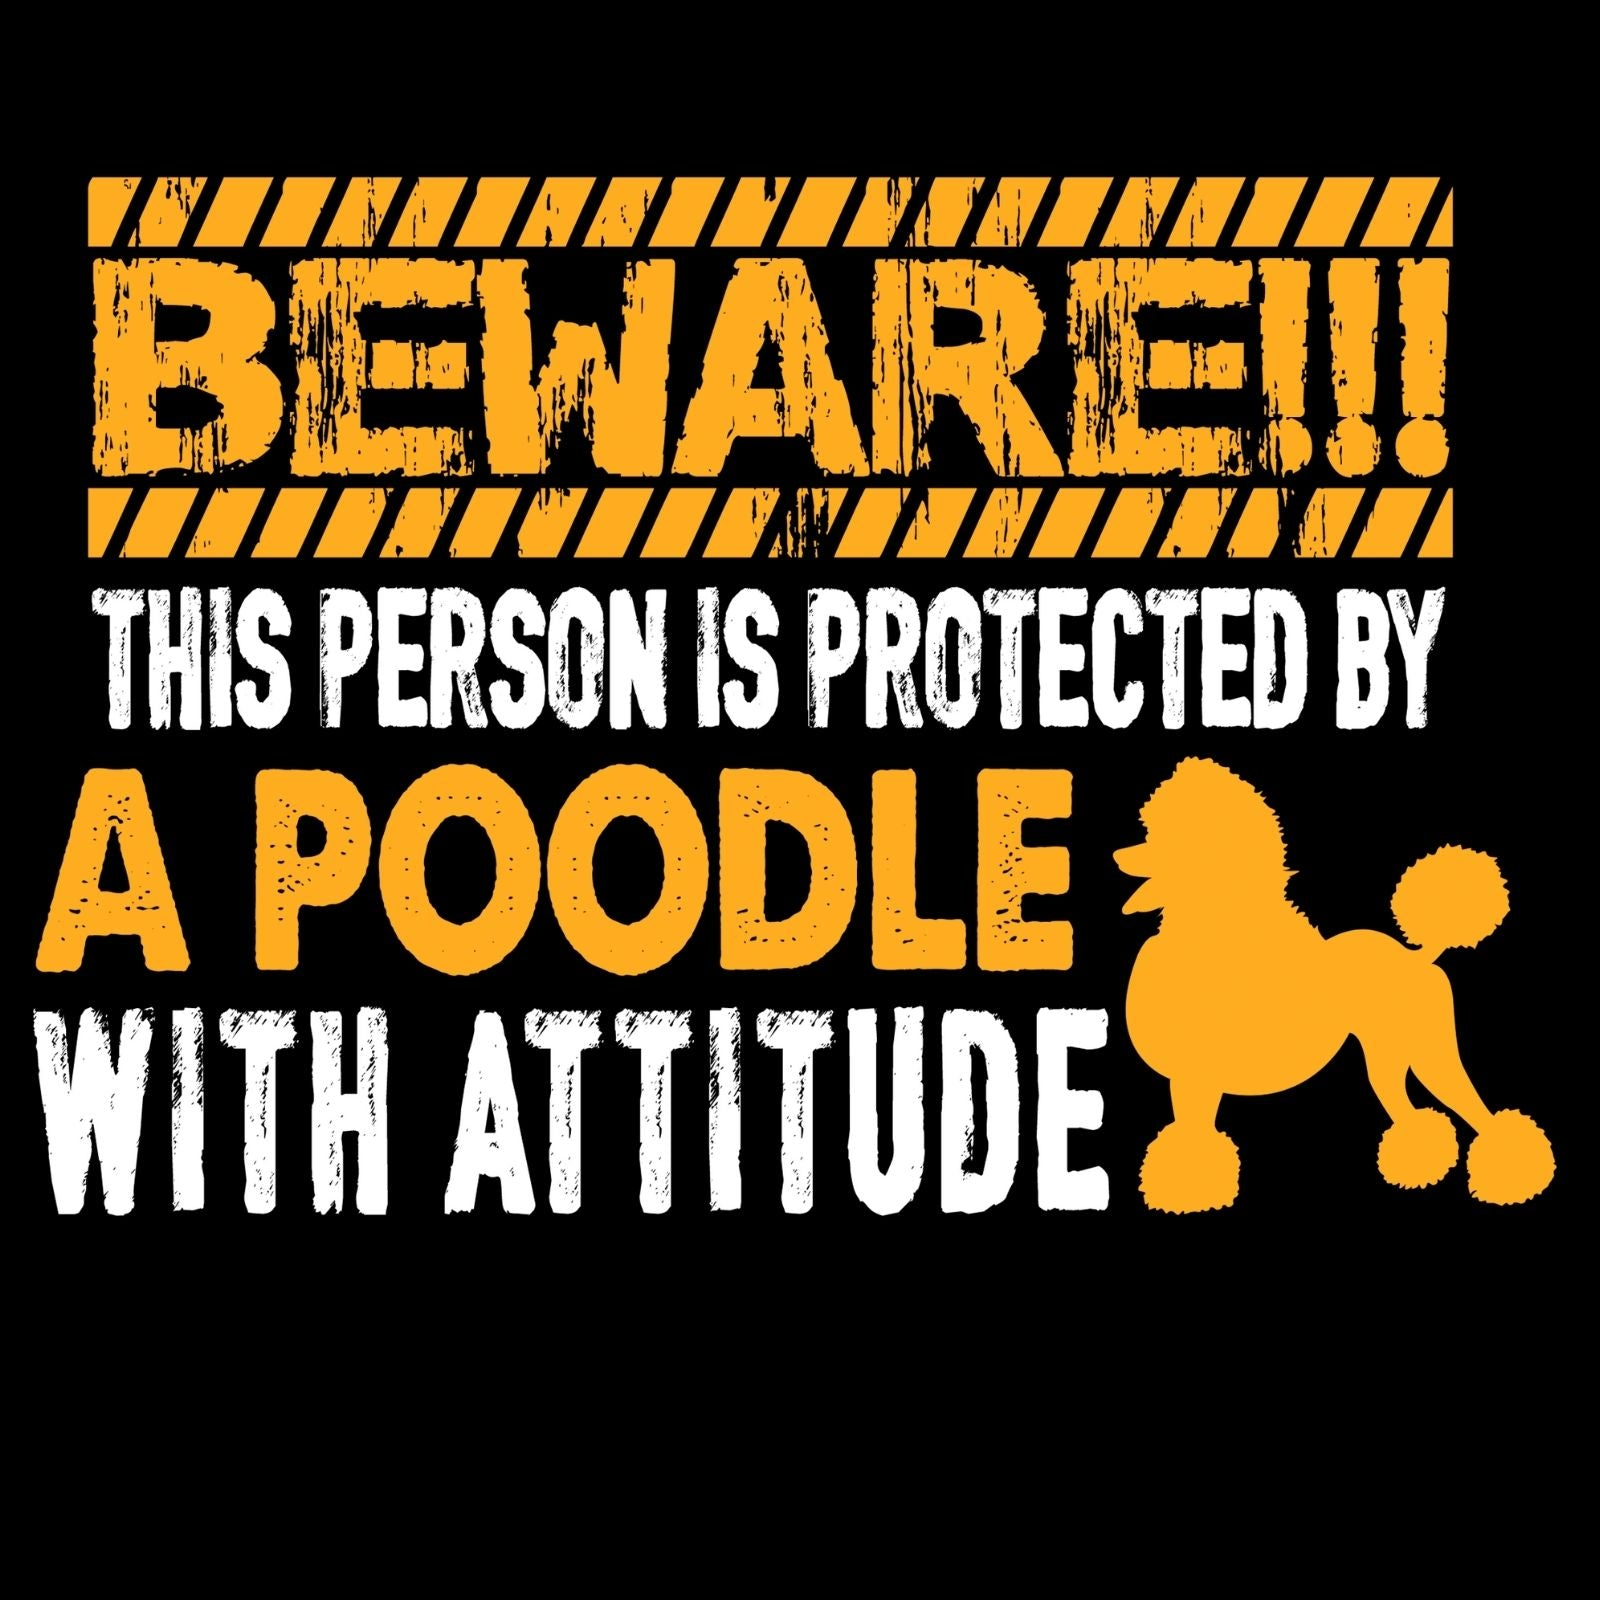 BEWARE This Person Is Protected By A Poodle With Attitude - Bastard Graphics